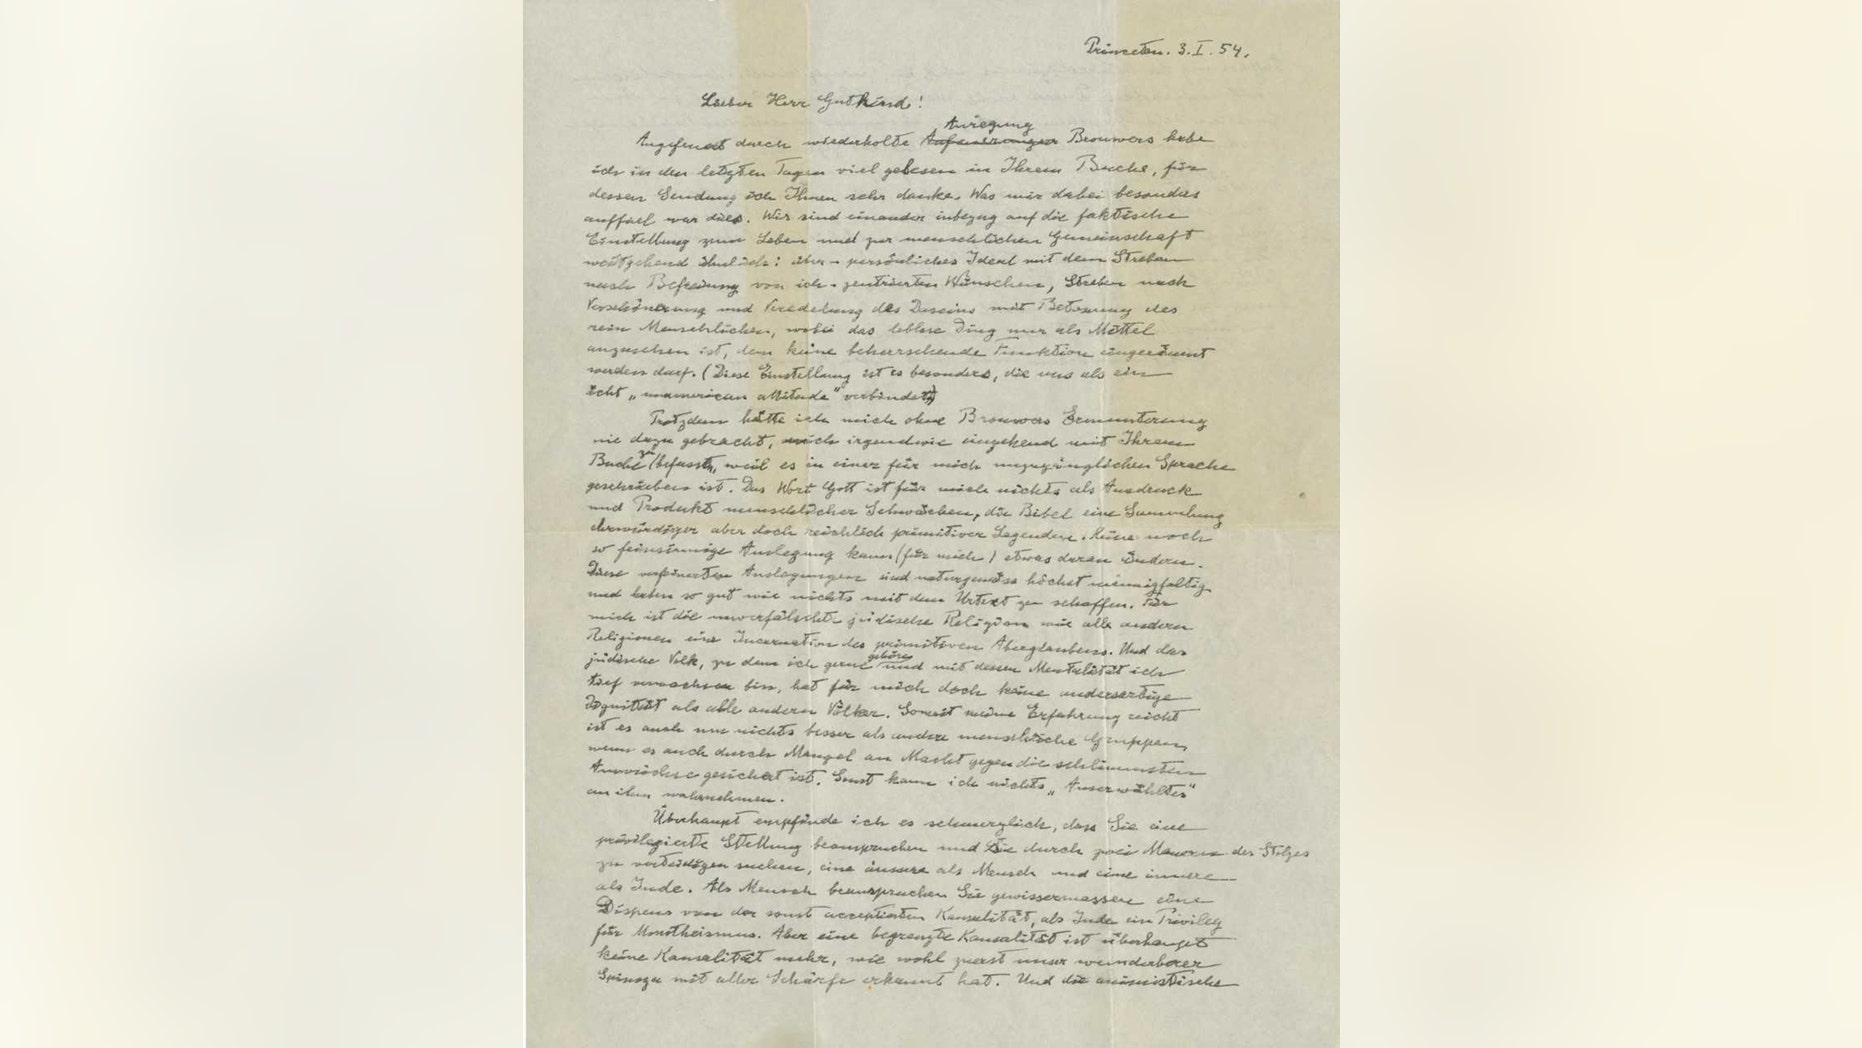 "EINSTEIN, Albert (1879-1955). Autograph letter signed (""A. Einstein"") to Eric Gutkind, Princeton, 3 January 1954. (Credit: CHRISTIE'S IMAGES LTD. 2018)"